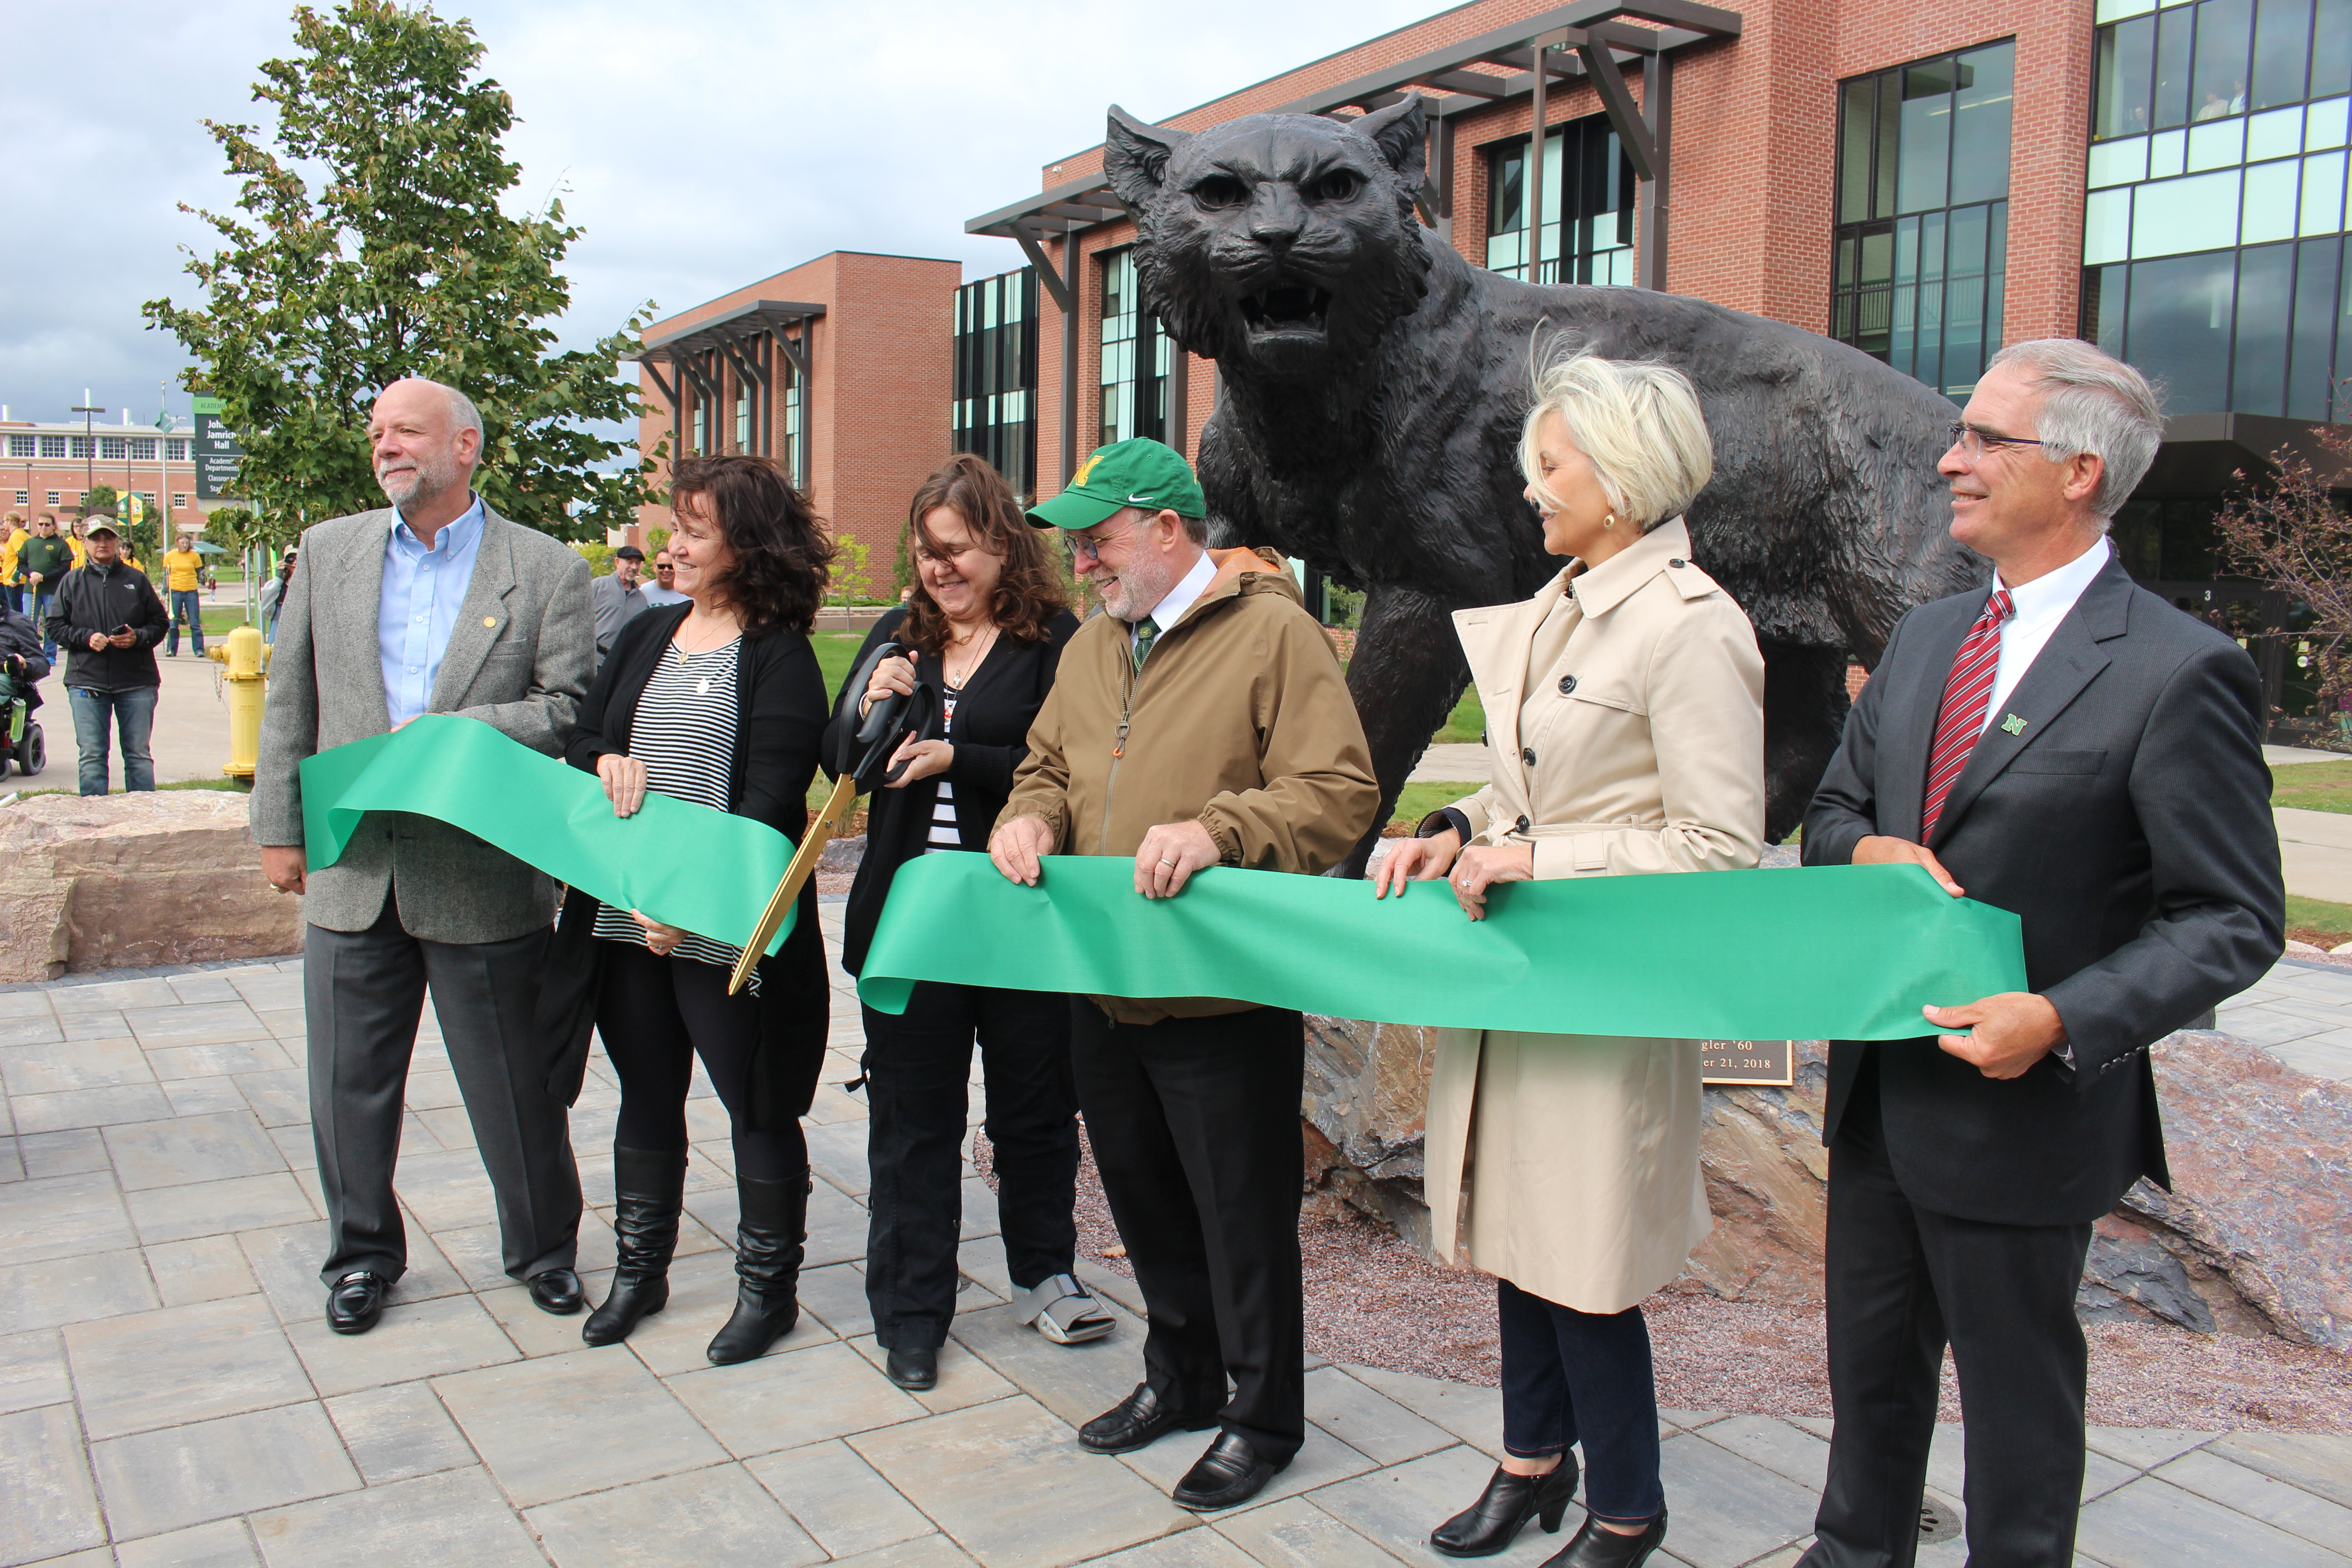 Ribbon-cutting with (from left) NMU Foundation Board President Mark Pynnonen; Ziegler\'s daughters Kelly and Wendy; NMU President Fritz Erickson; Alumni Board President Susan Bilkey; and NMU Board of Trustees Chair Robert Mahaney